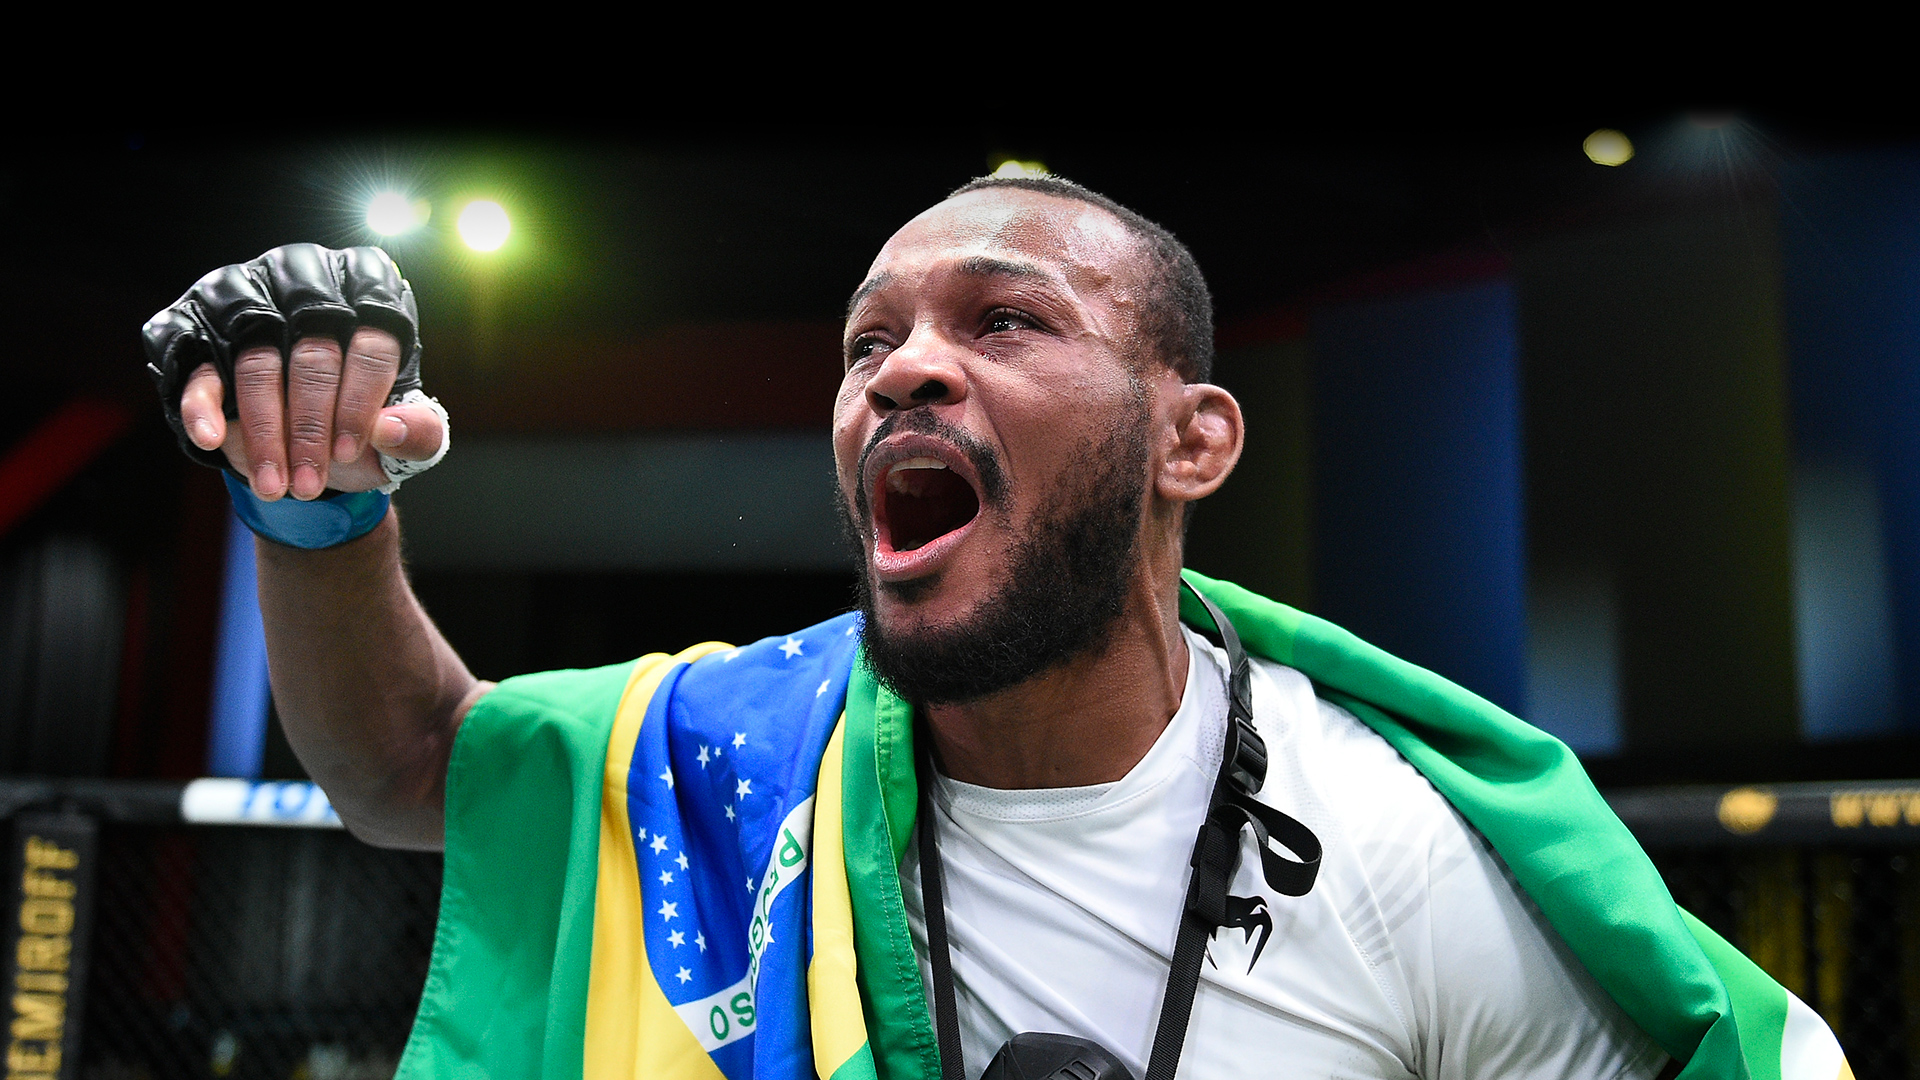 Carlston Harris reacts after his submission victory over Christian Aguilera in a welterweight fight during the UFC Fight Night event at UFC APEX on May 08, 2021 in Las Vegas, Nevada. (Photo by Chris Unger/Zuffa LLC)